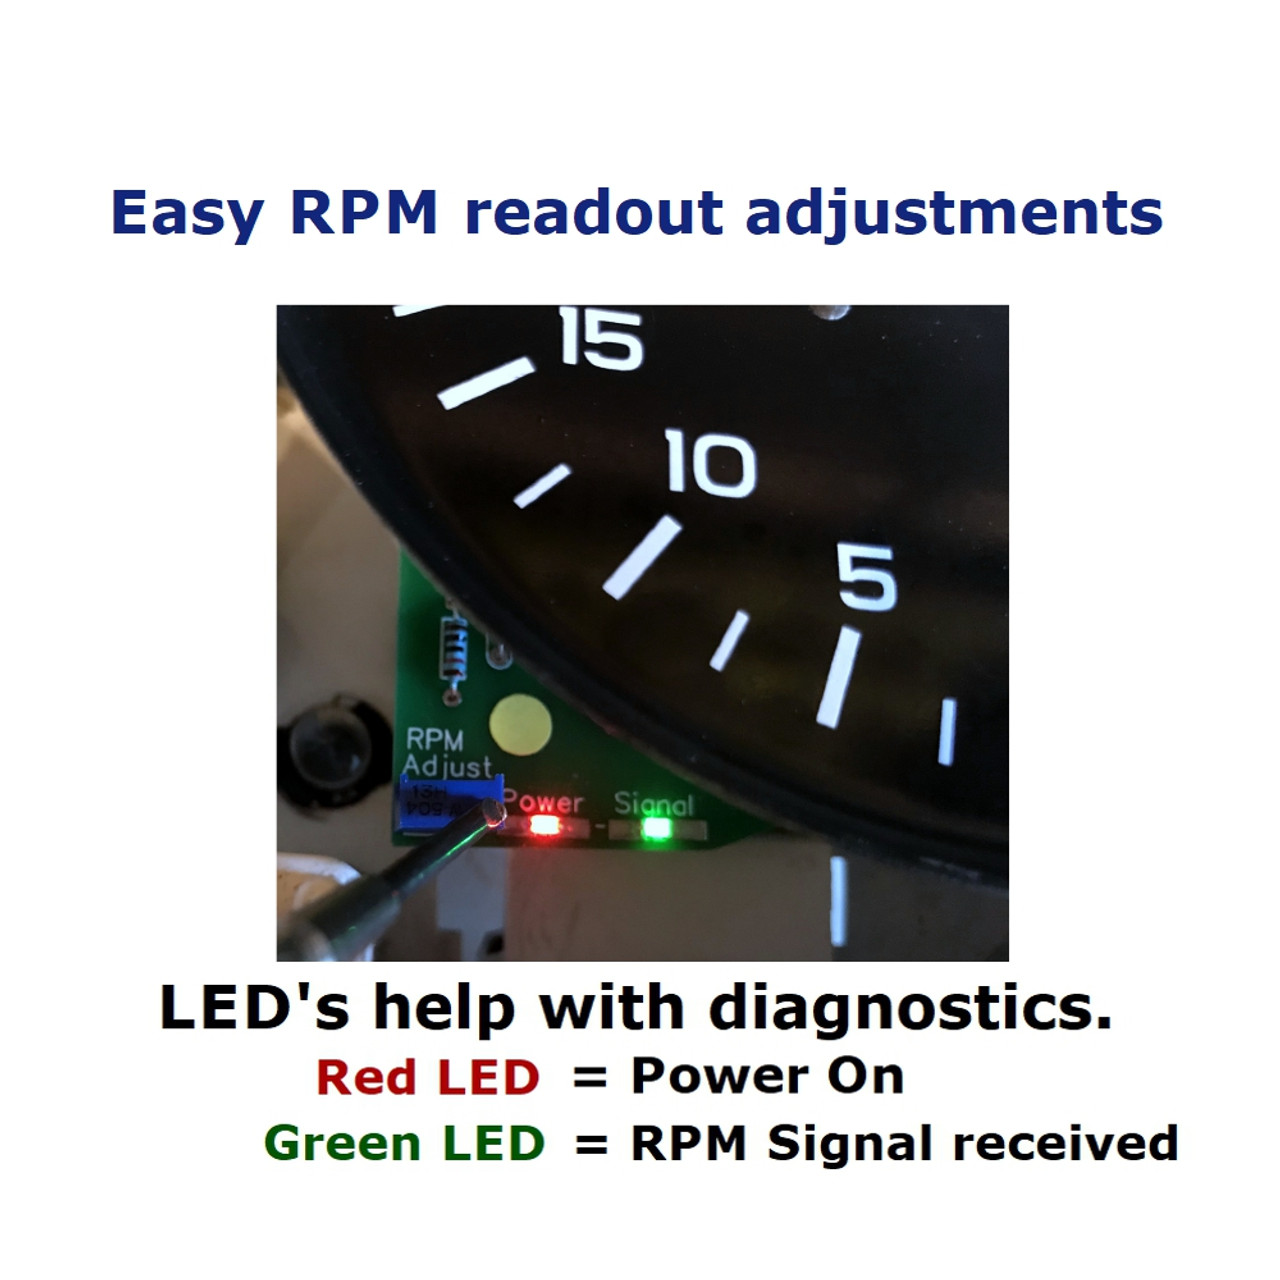 LED's help with diagnostics. Easy to adjust RPM readout.